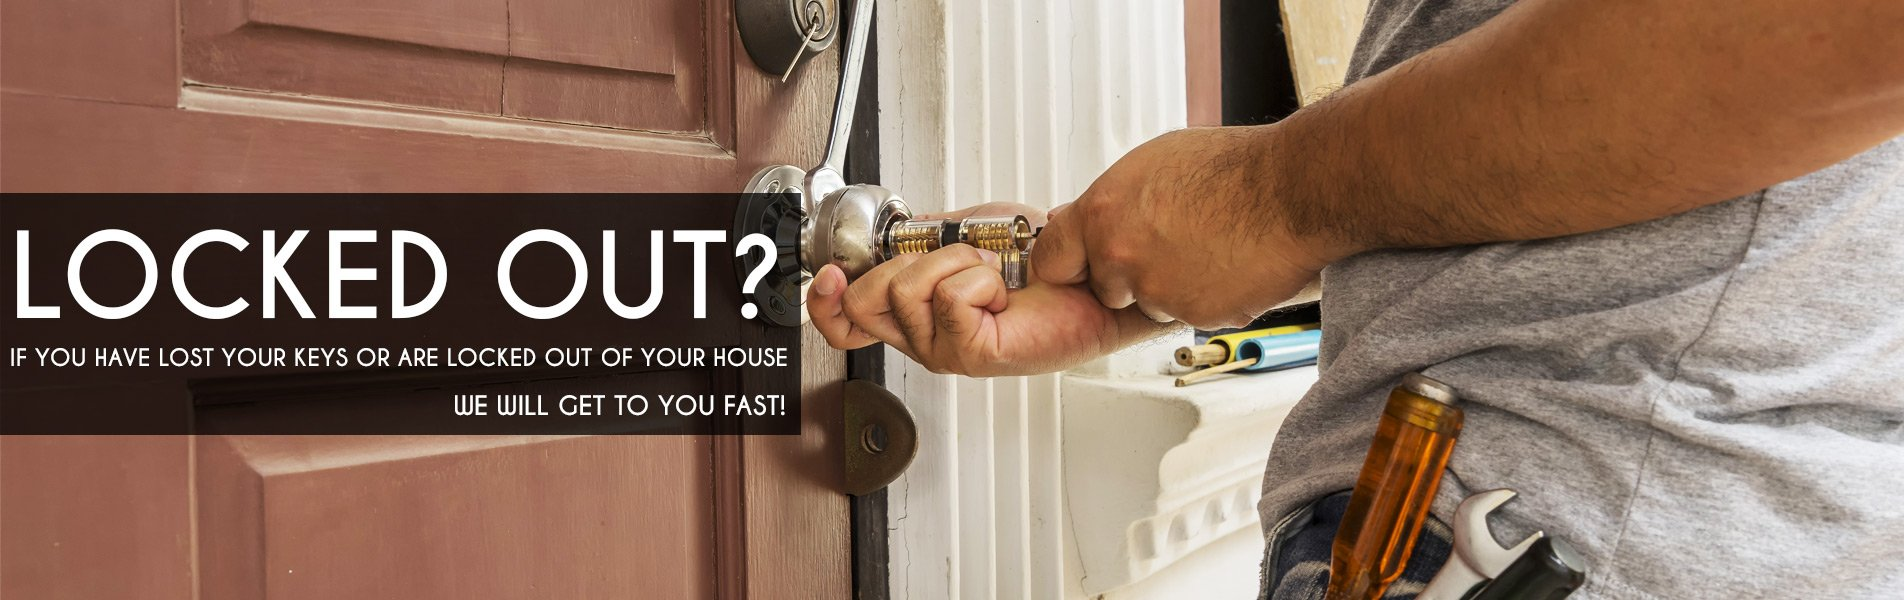 Union NJ Locksmith Store Union, NJ 908-514-4143